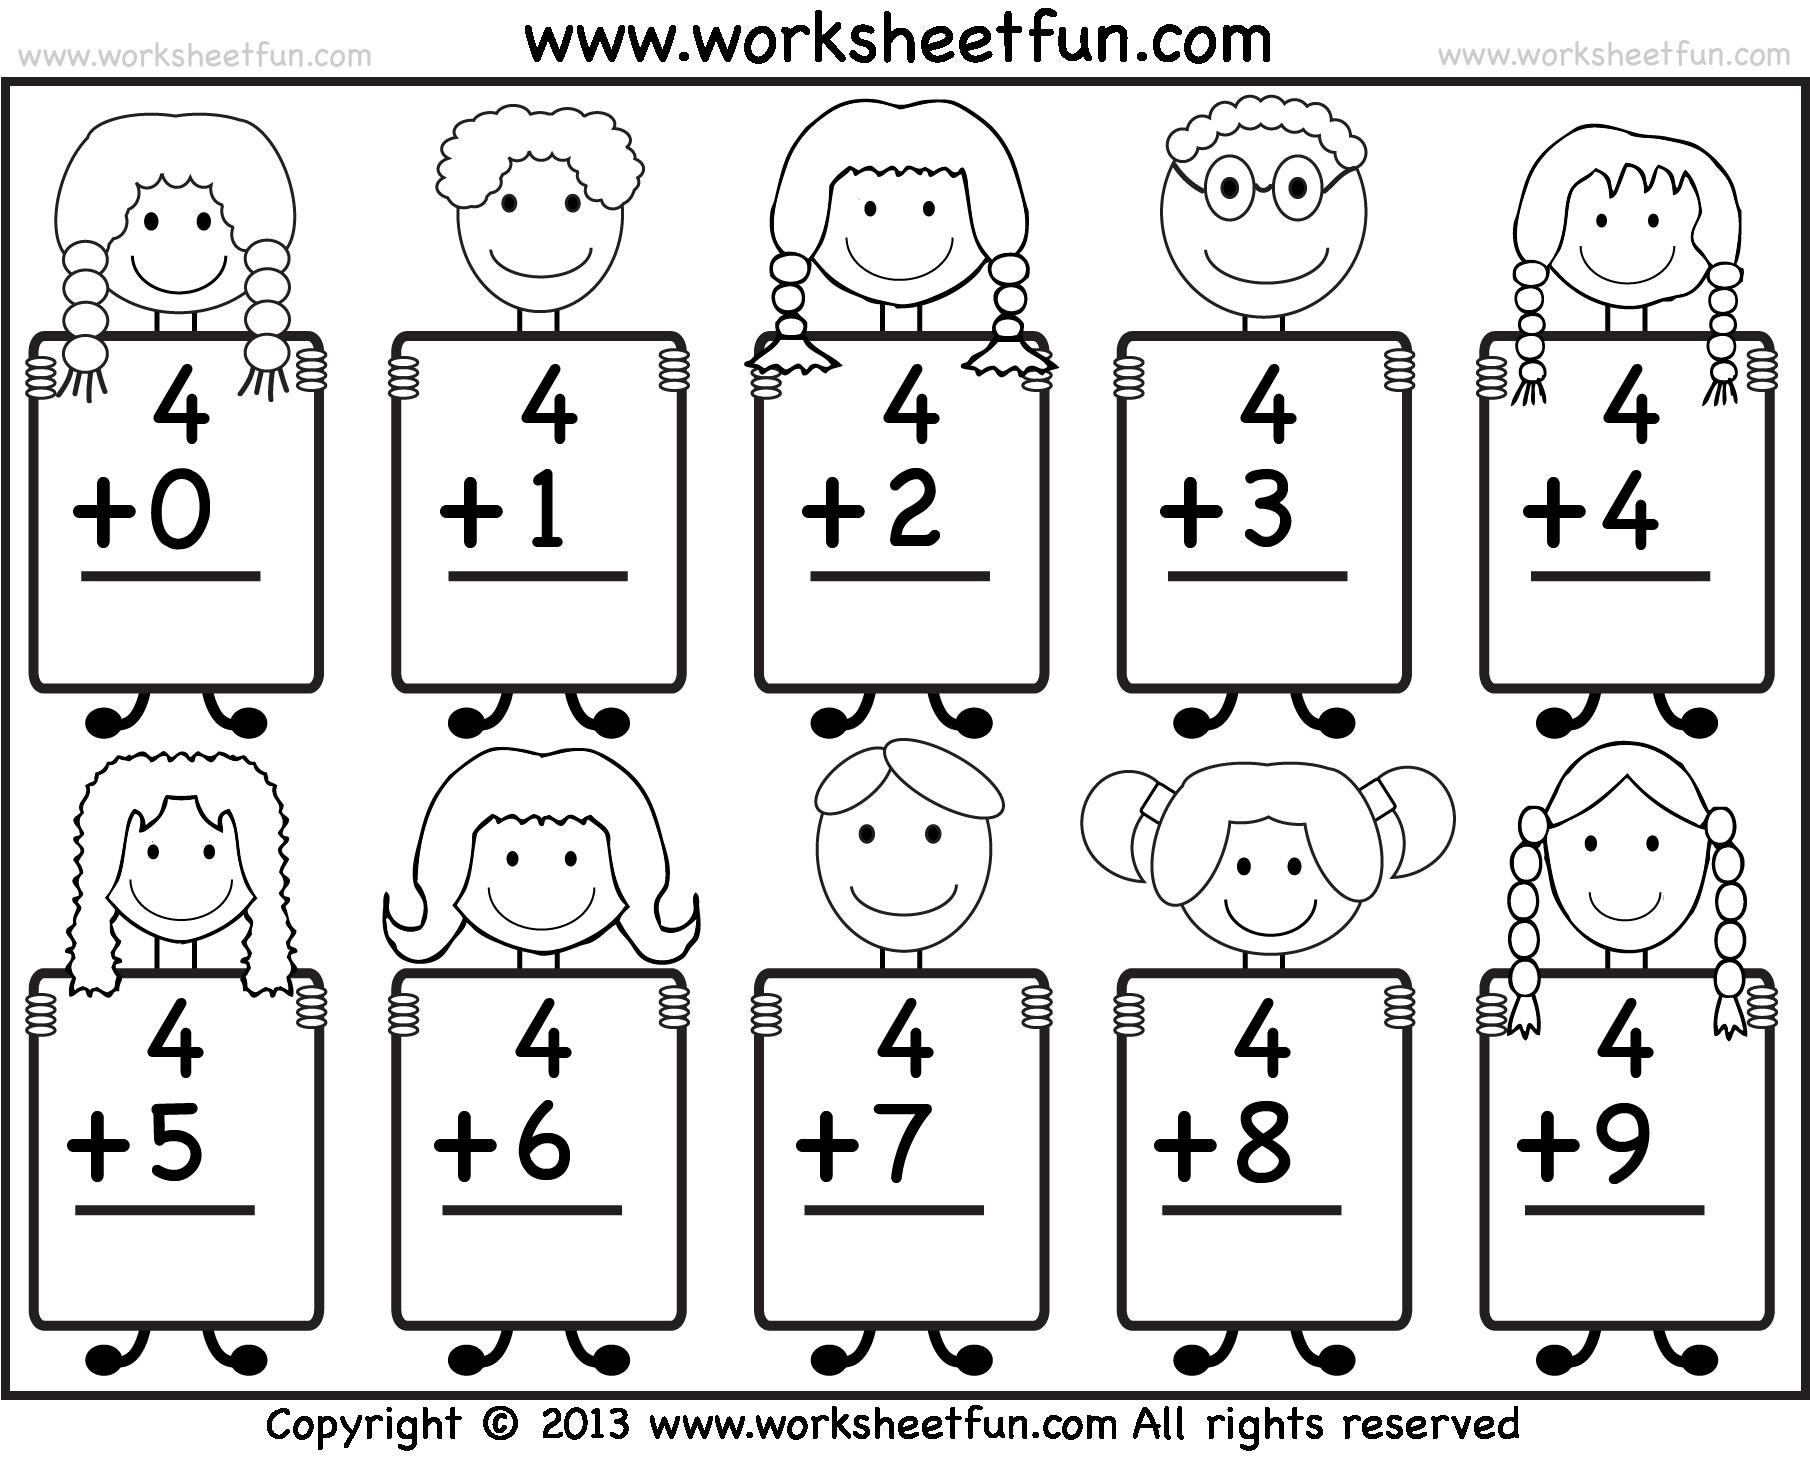 freeprintablemathworksheetsforkindergartenaddition1png – Addition Worksheets Kindergarten Printable